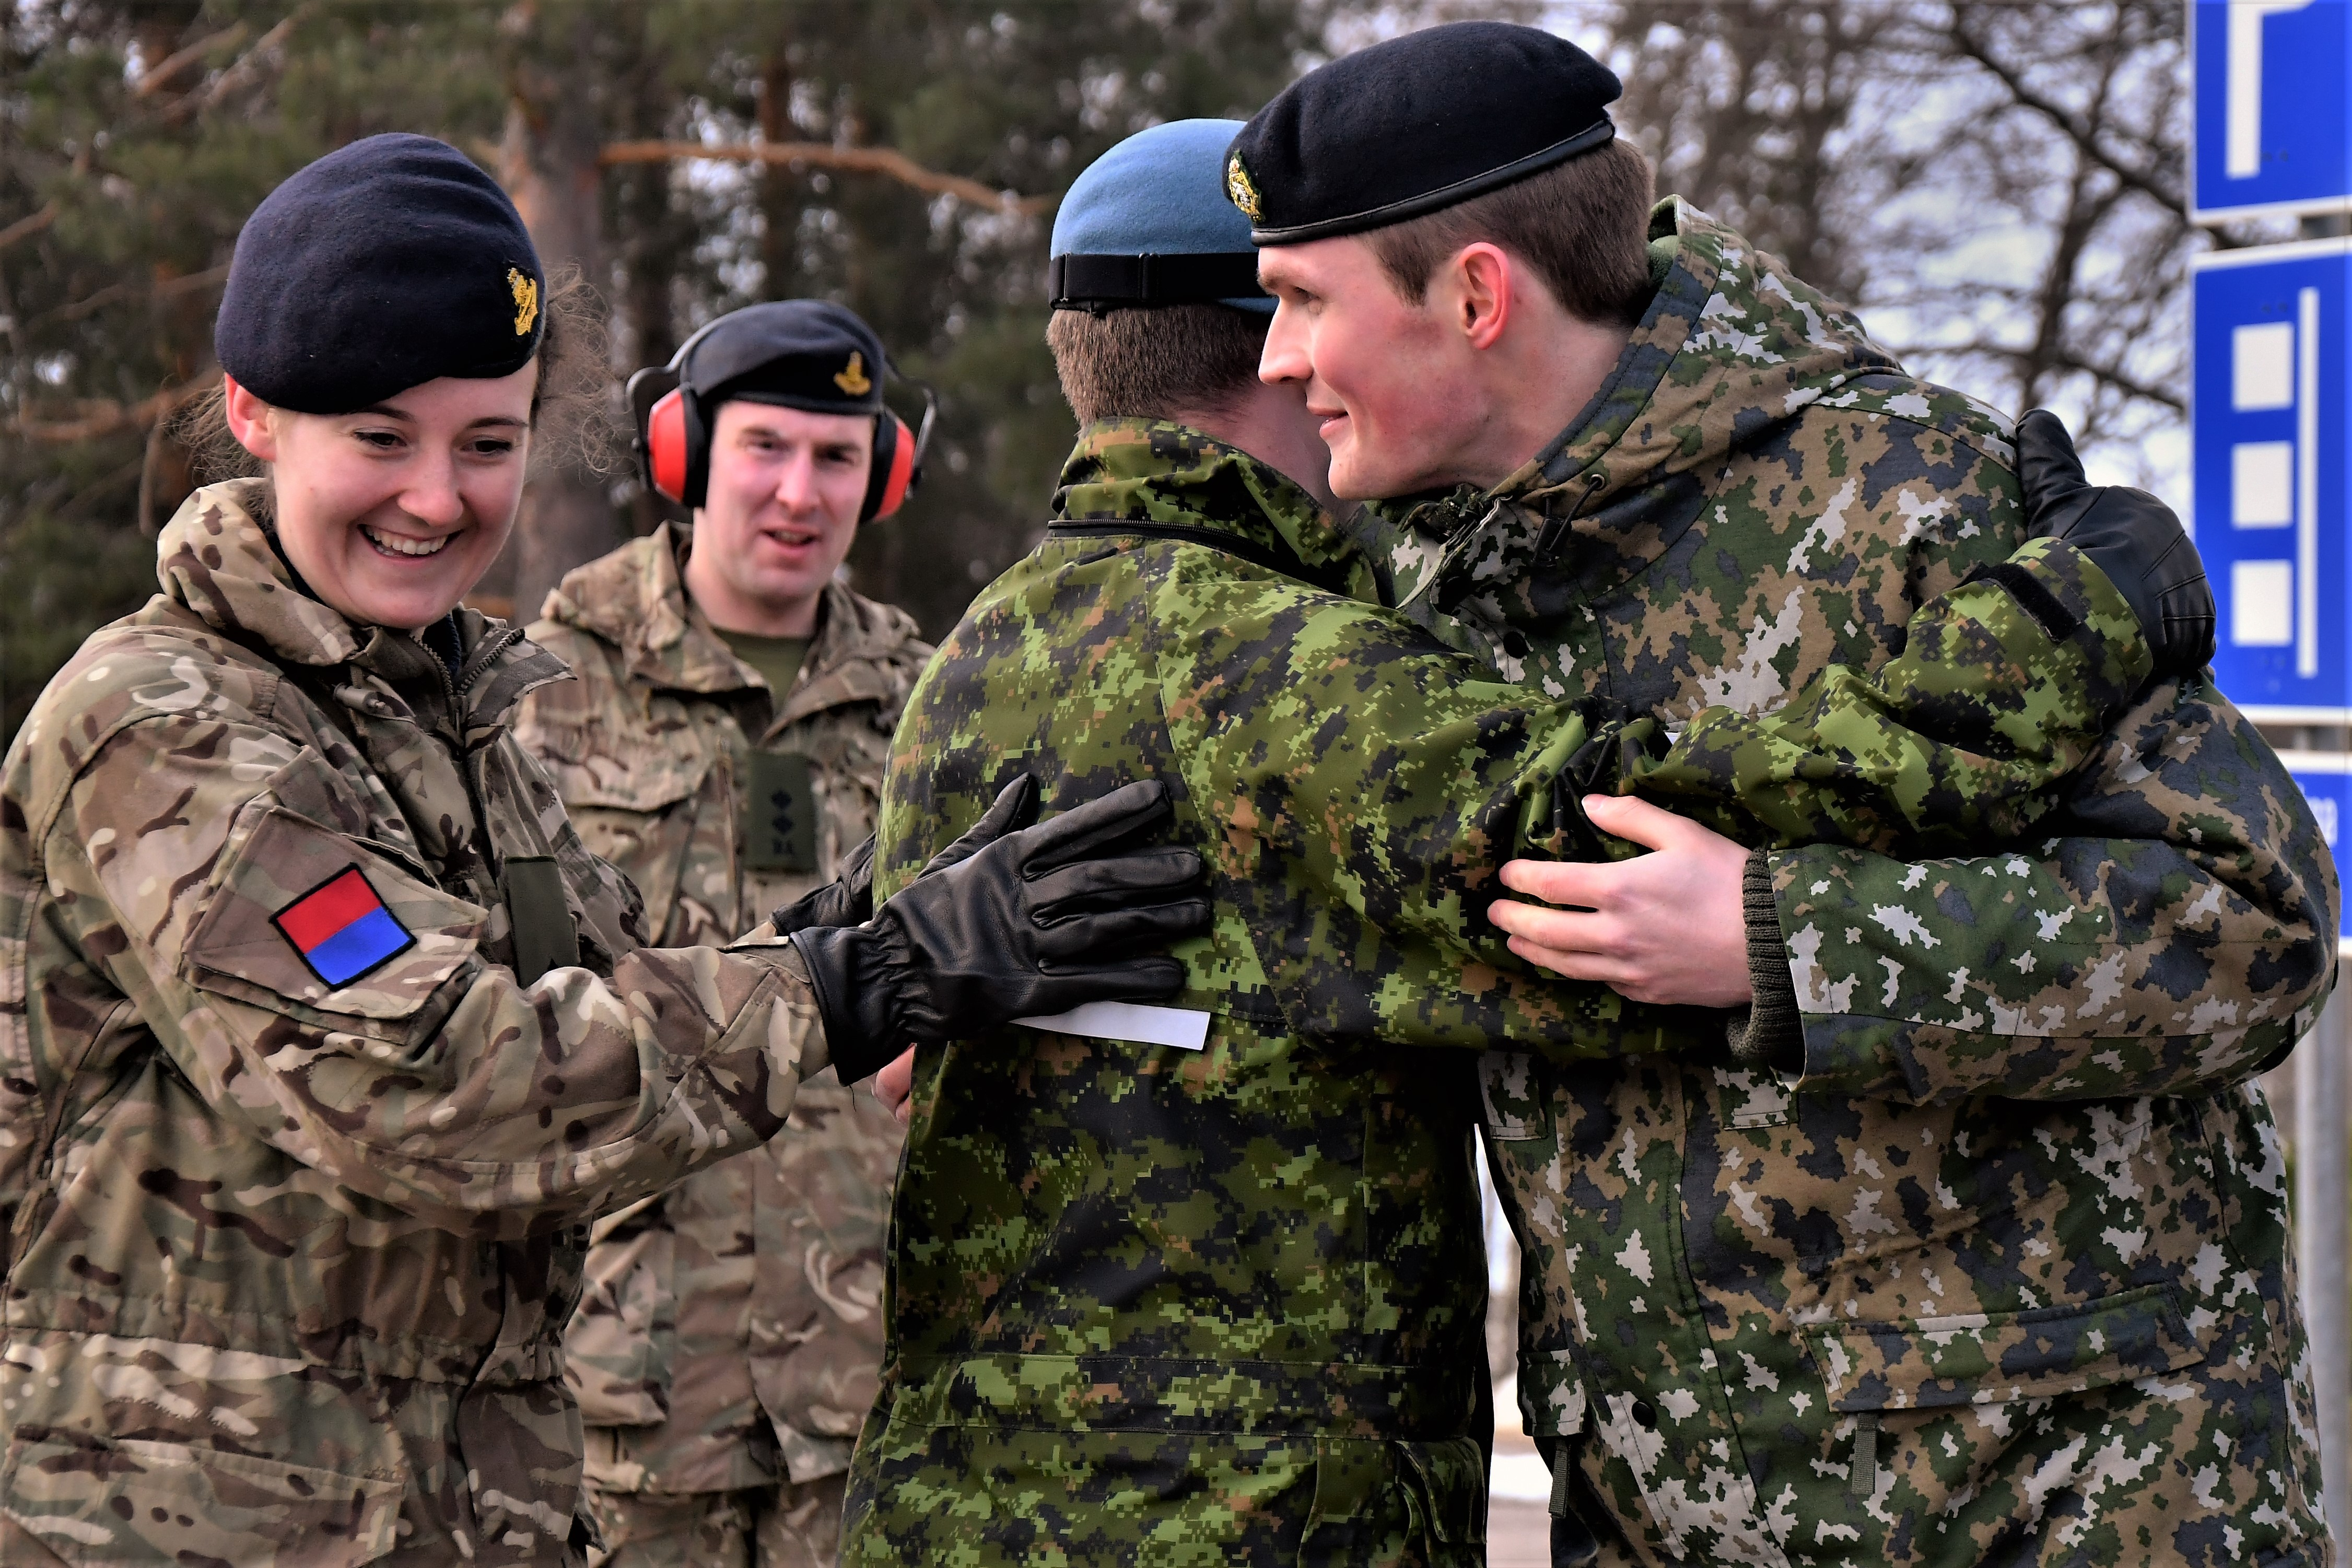 2Lt Lydia Brownlow from the UK and Capt Richard Ackroyd at the Young Reserve Officer's Workshop held in Finland earlier this year.